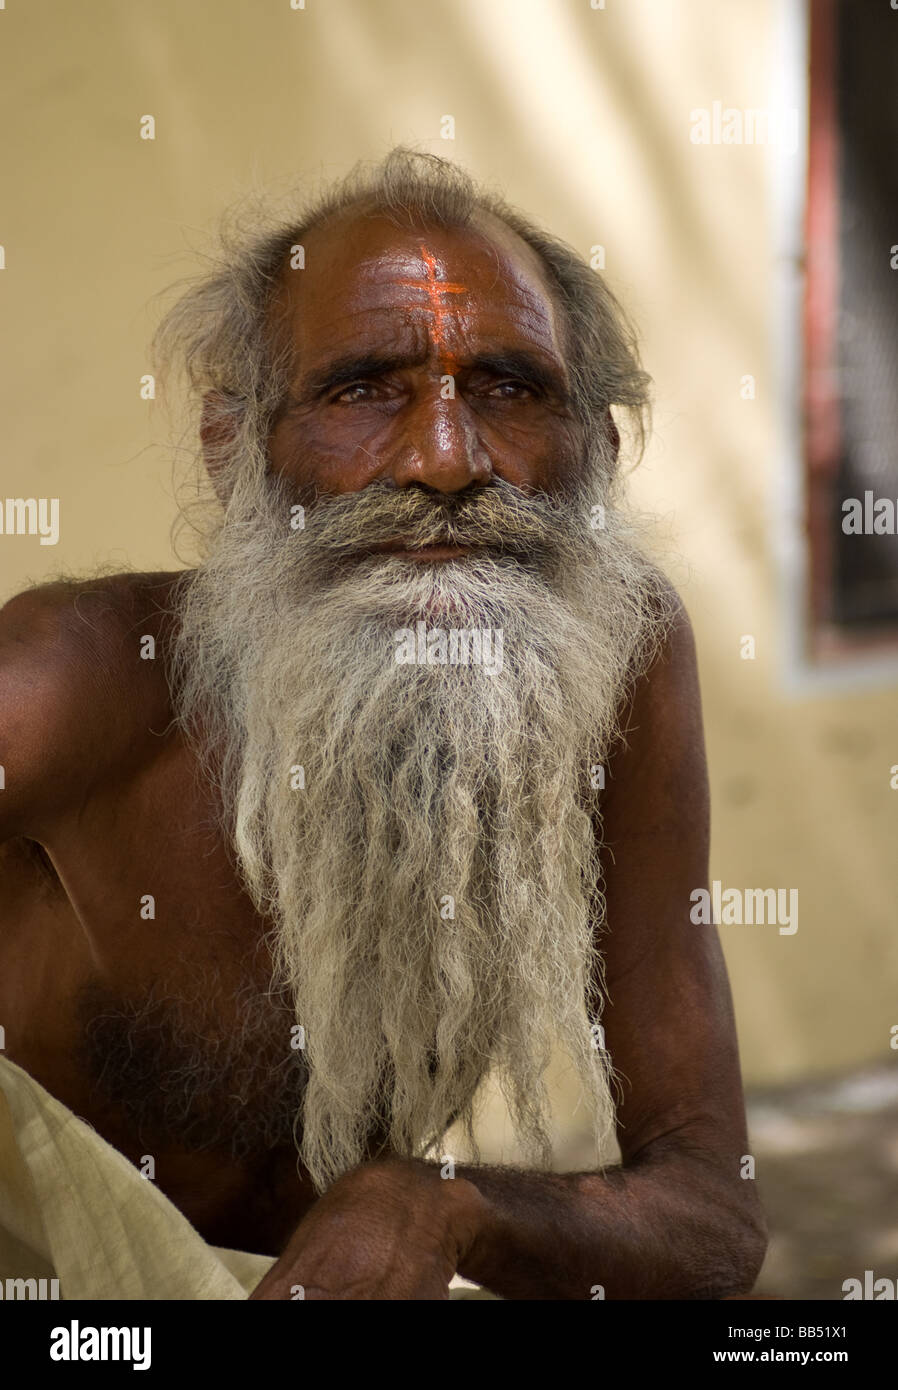 old indian white bearded man stock photos old indian white bearded